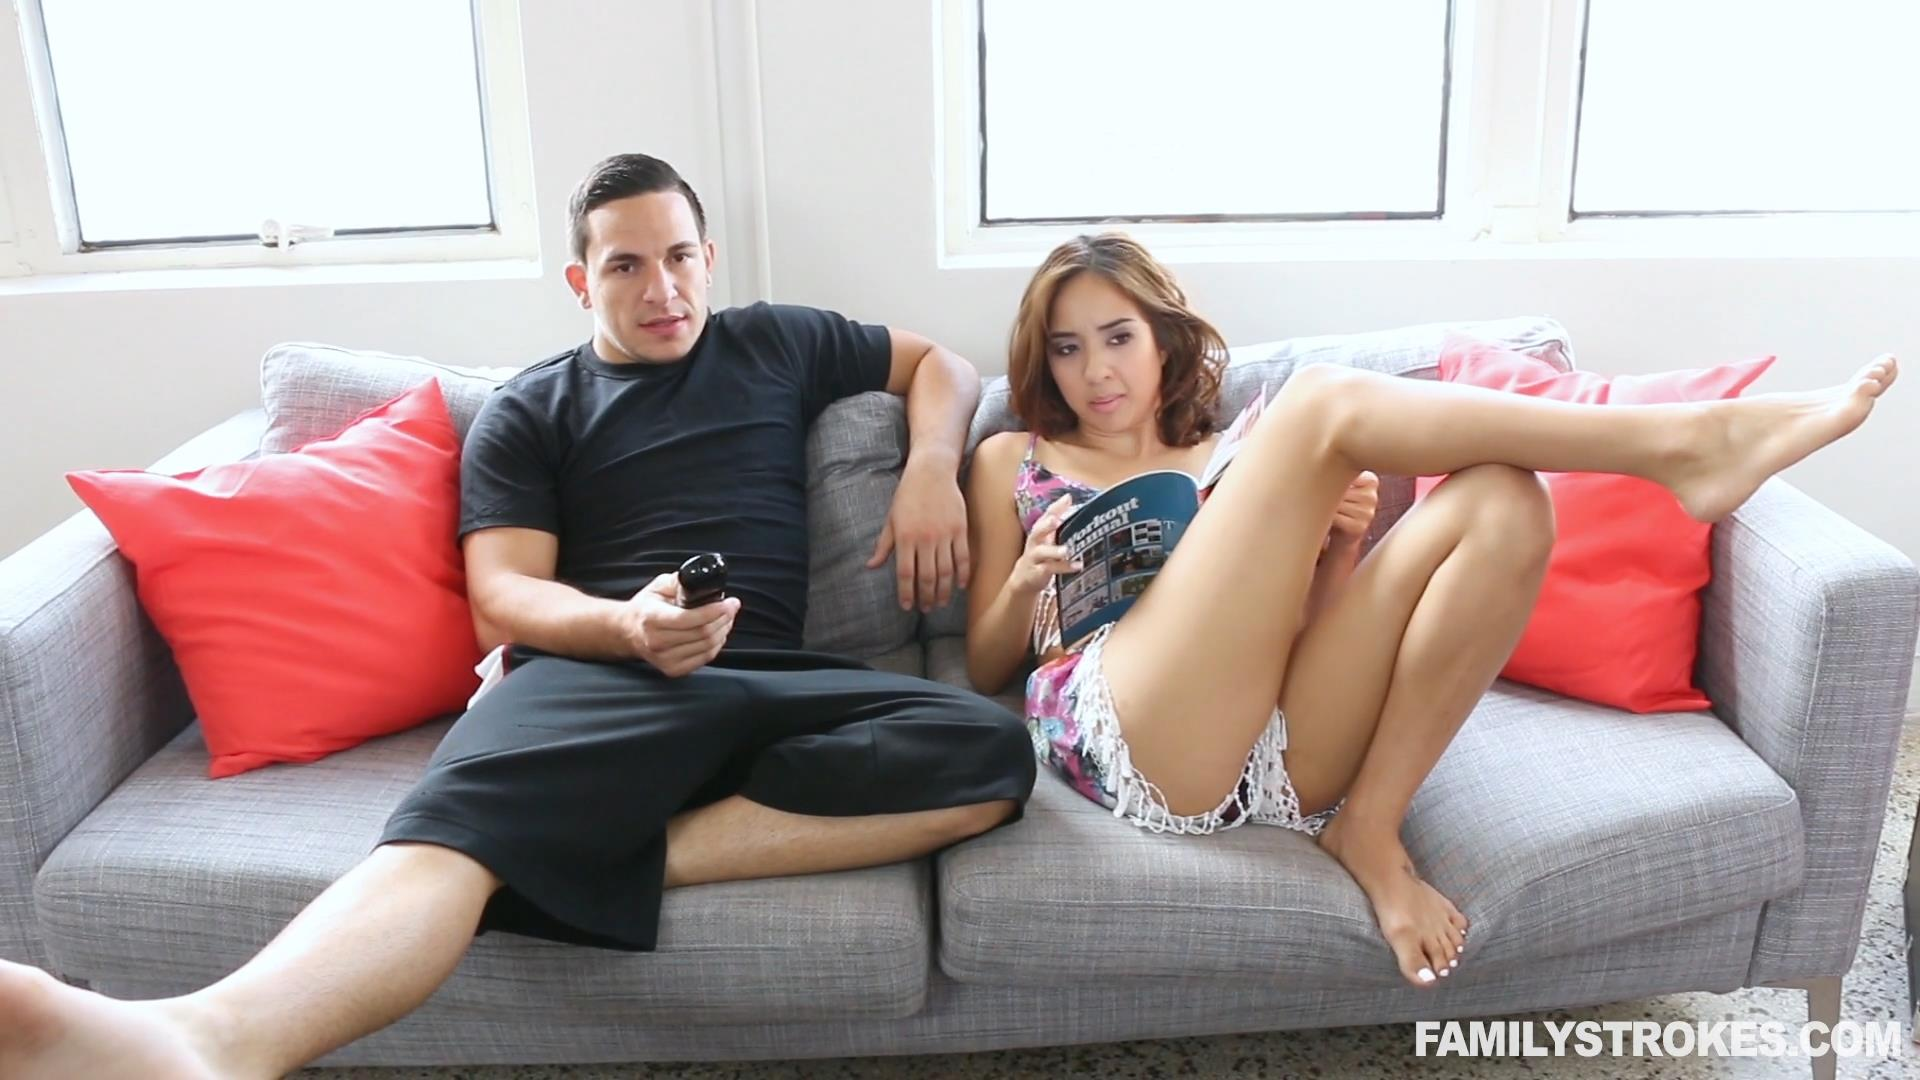 3rd attempt to fuck his step-sister worked! - family strokes